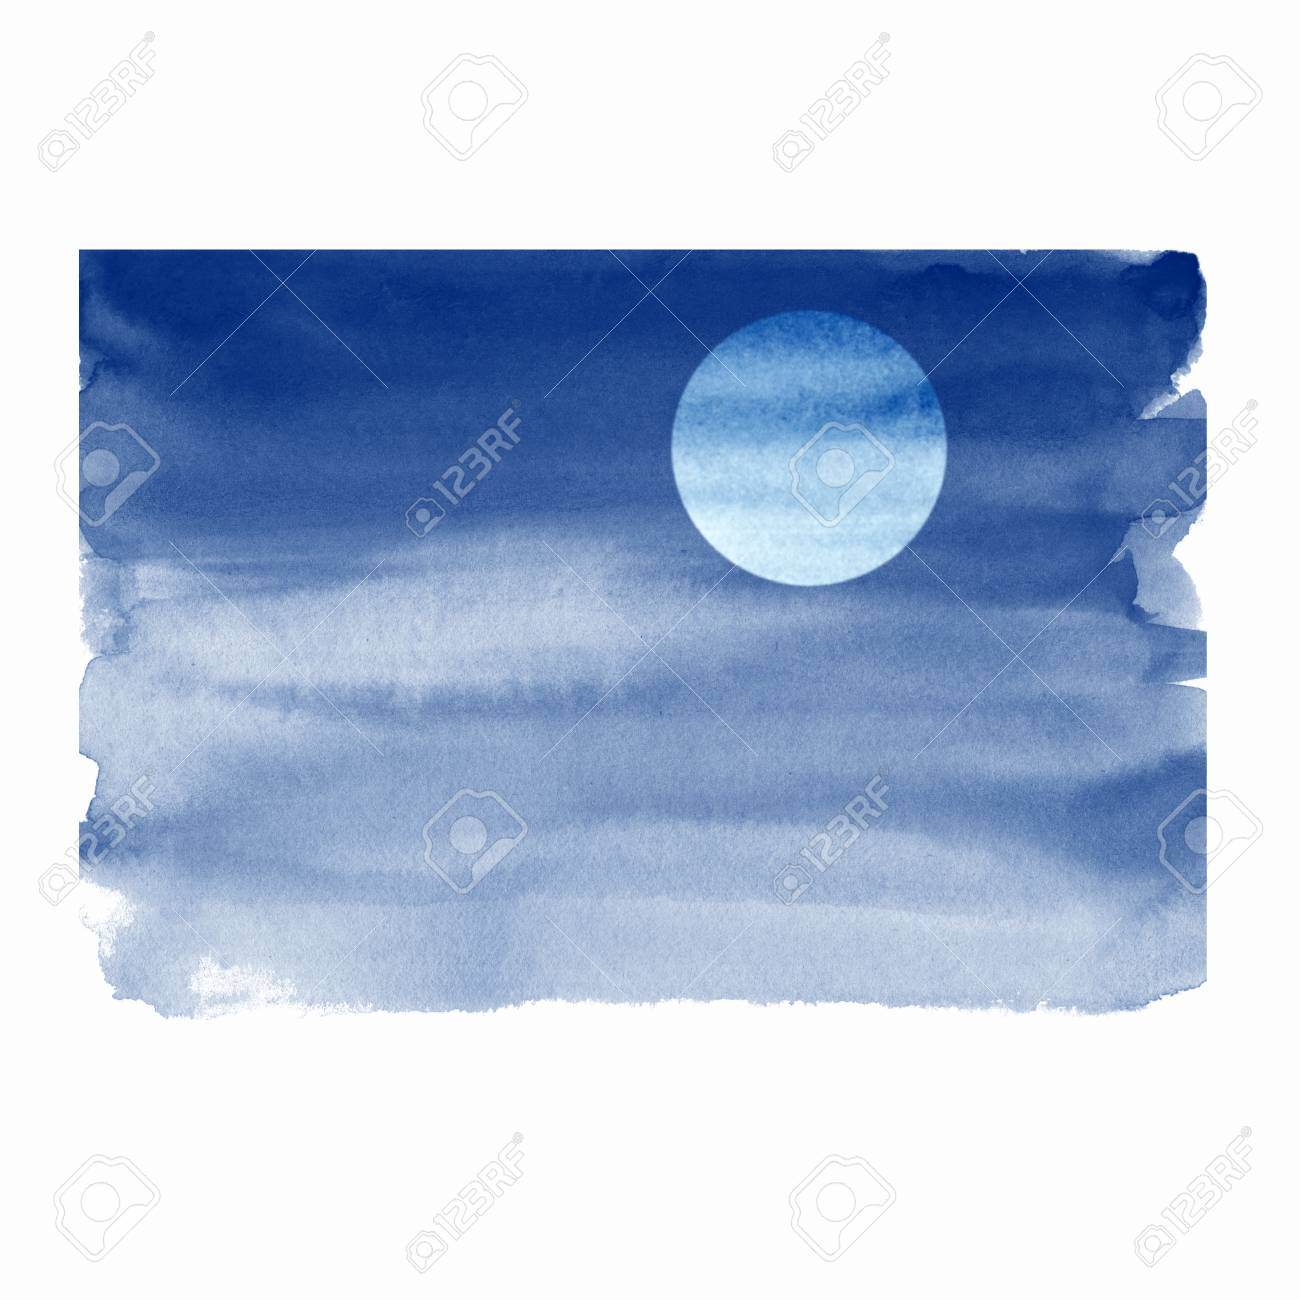 Watercolor night sky with moon, simple illustration - 88290661